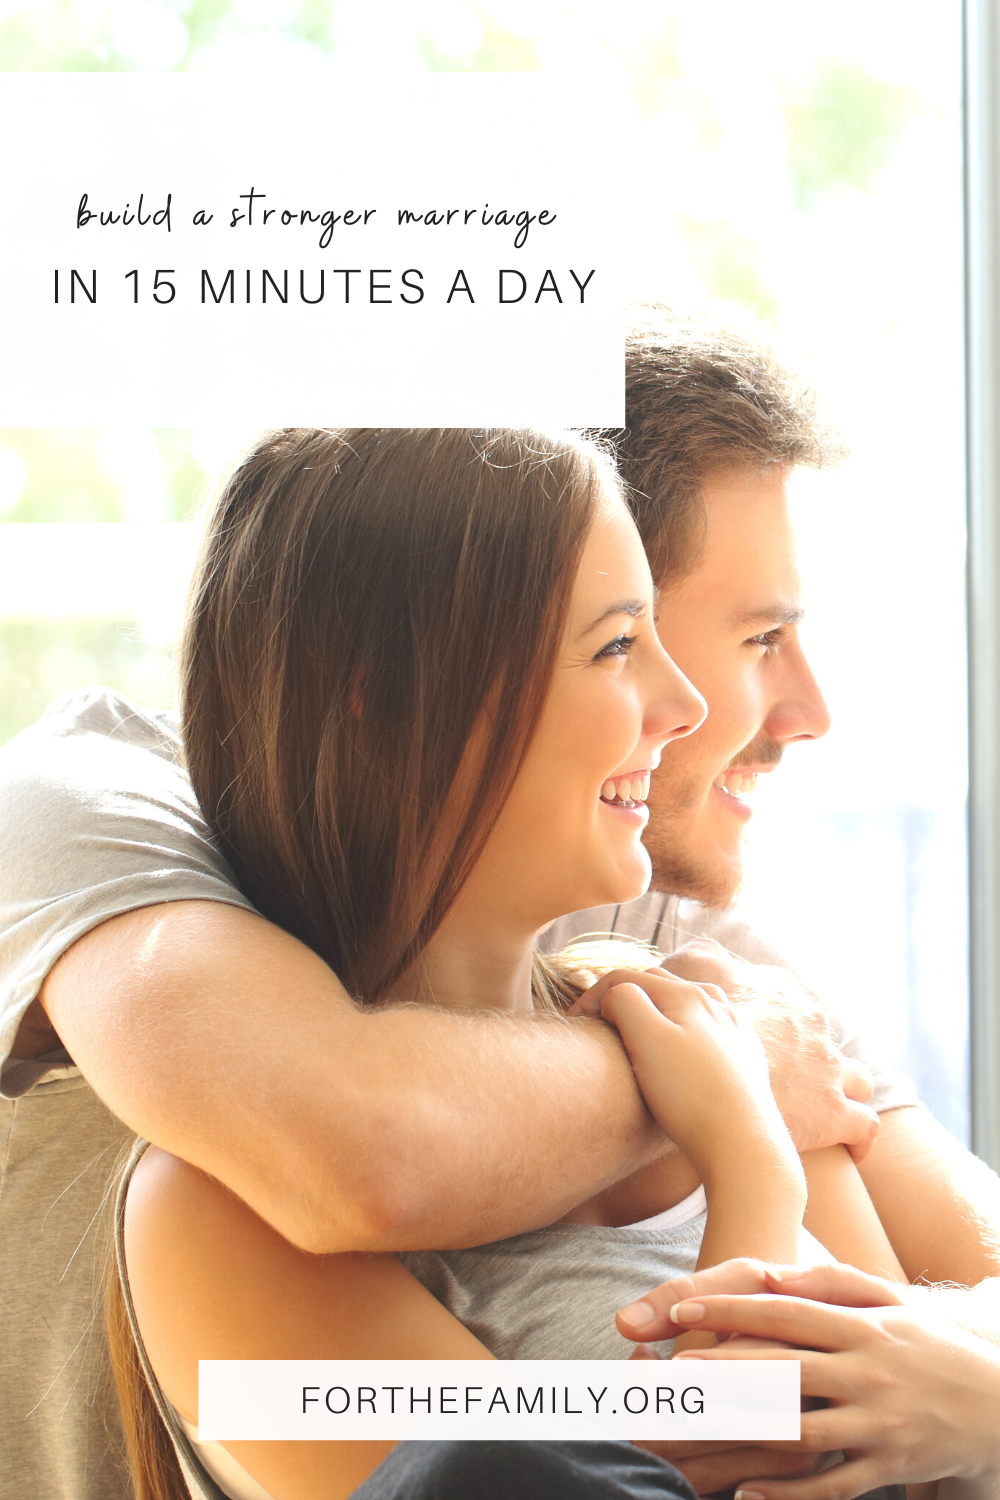 Since we are all experiencing an abundance of family time while working from home, it might be easy to let intentional time with your spouse fall to the back burner. Planning just 15 minutes a day to communicate as a couple can bring you that much closer! Here are some great conversation starters...